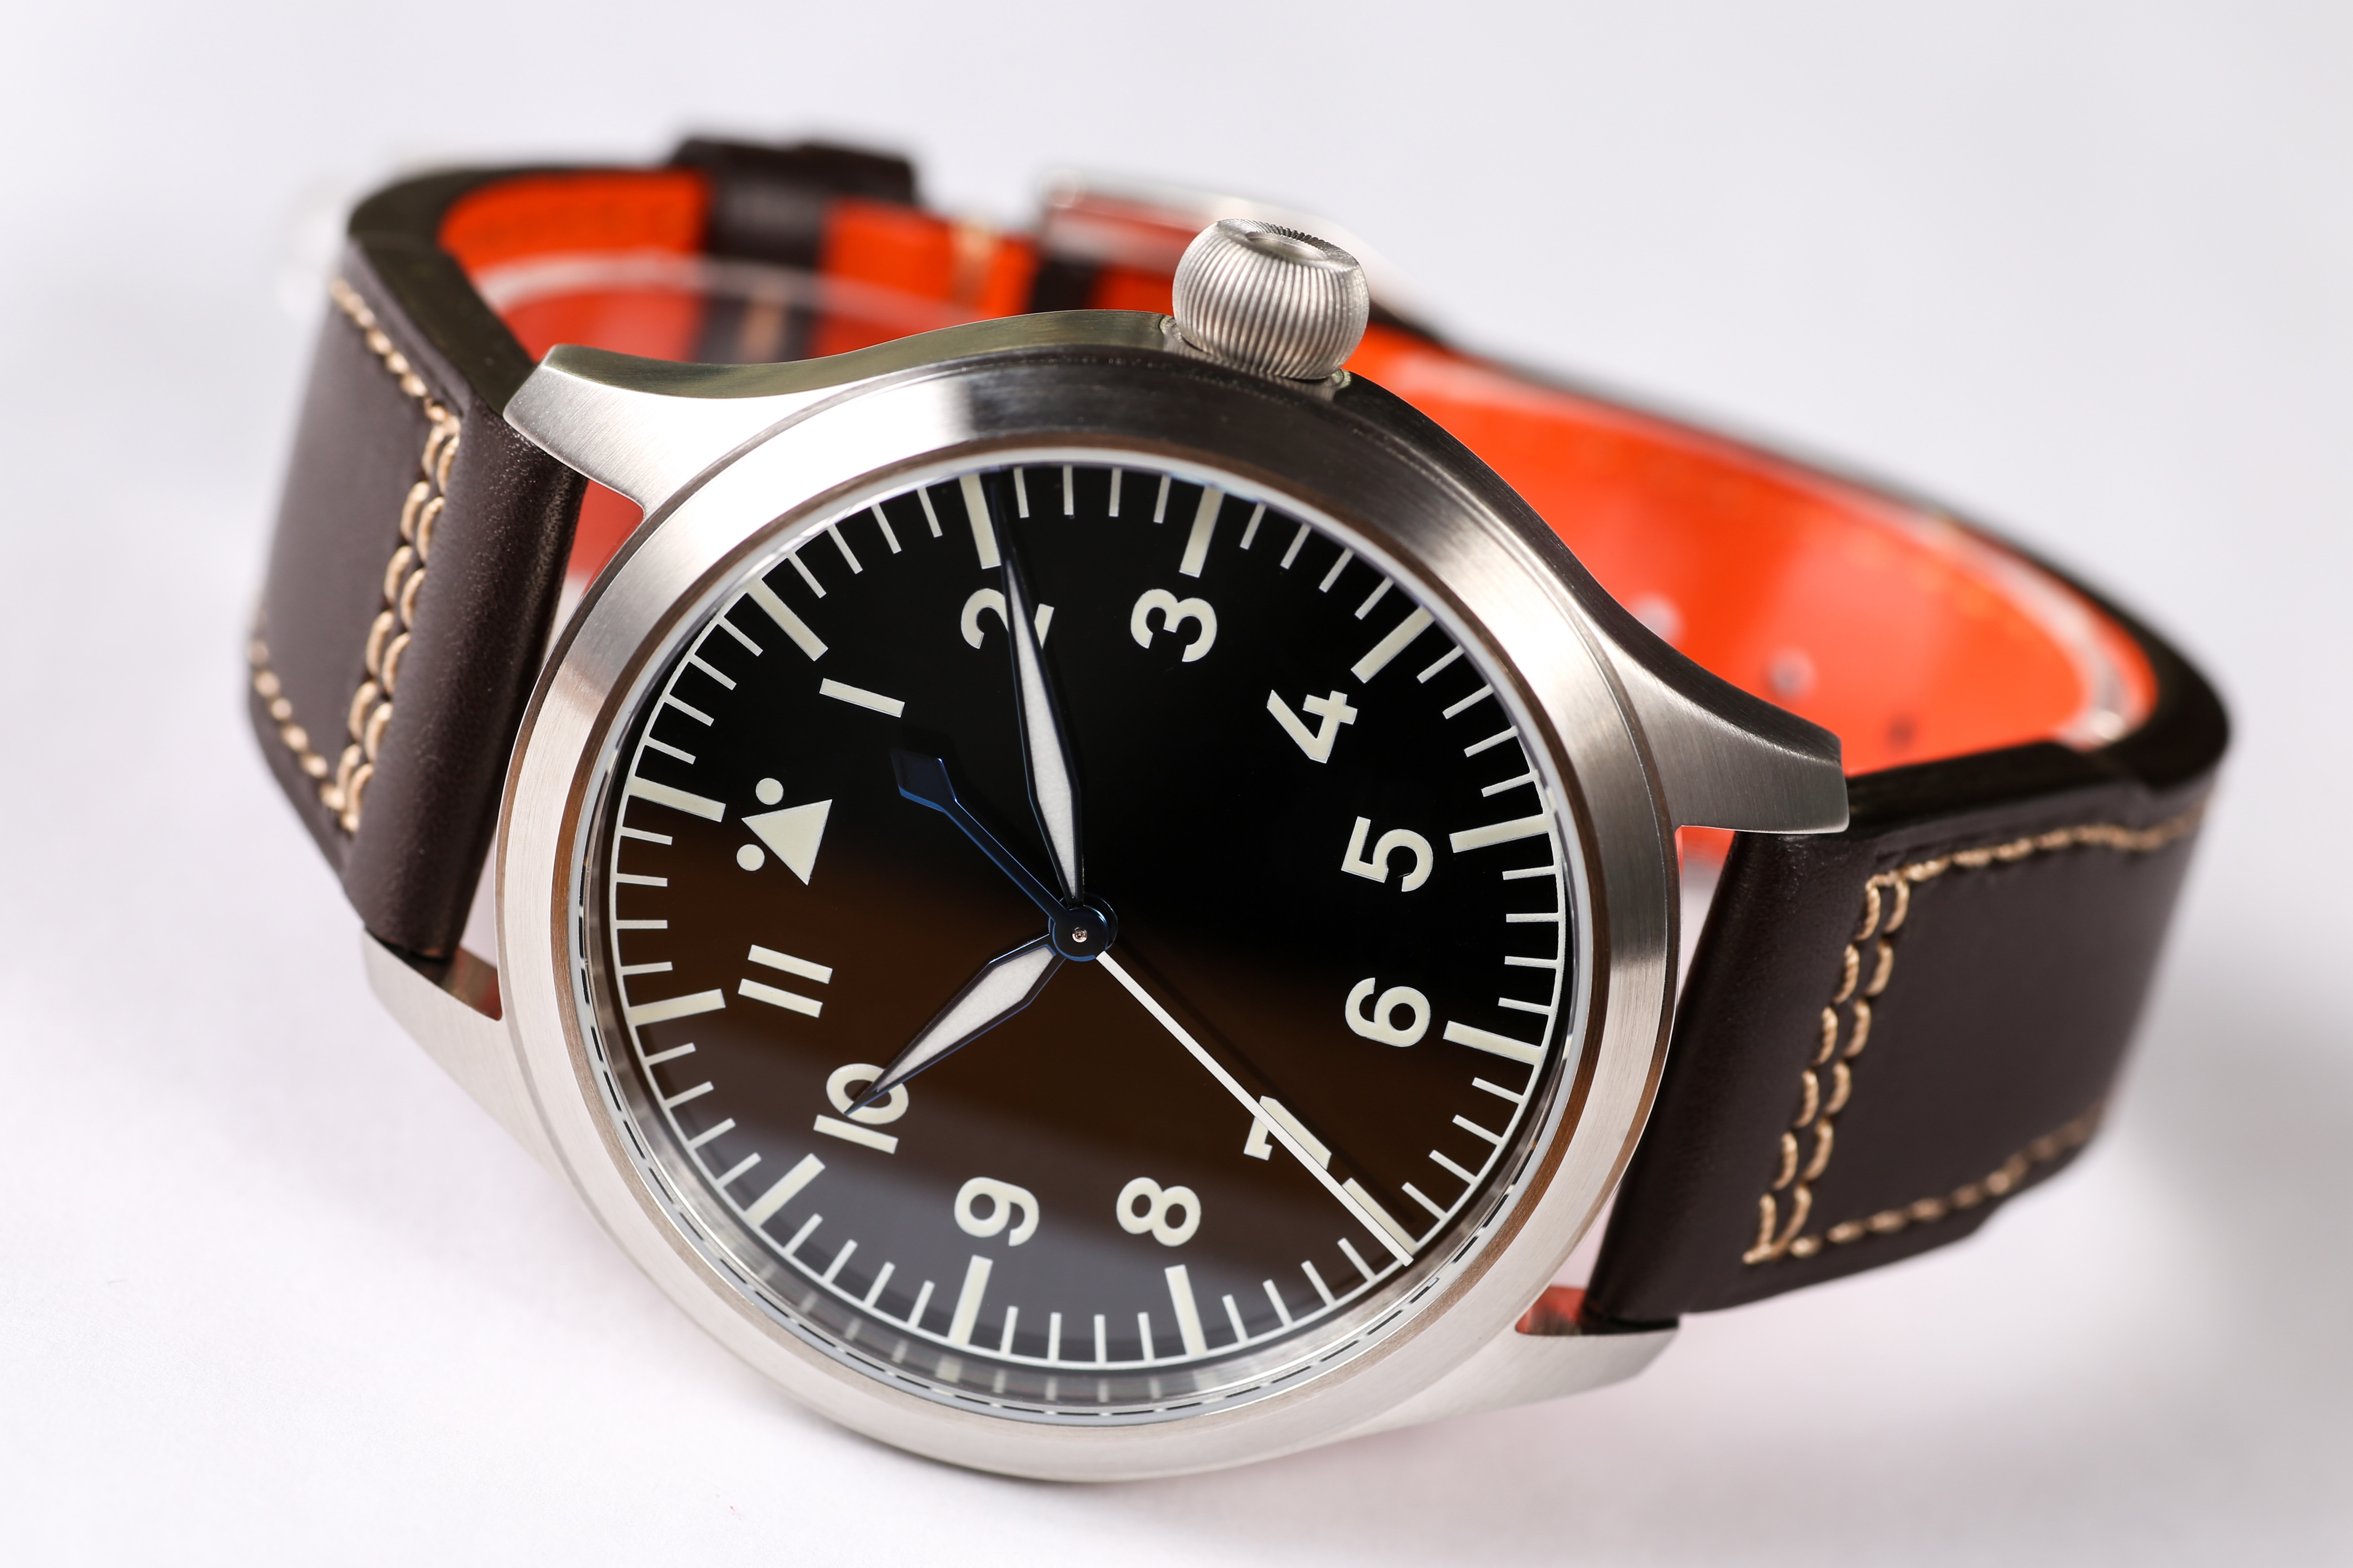 【Escapement Time】Automatic PT5000 Movement Pilot Watch with Type-B or Type-A Black Dial and 42mm